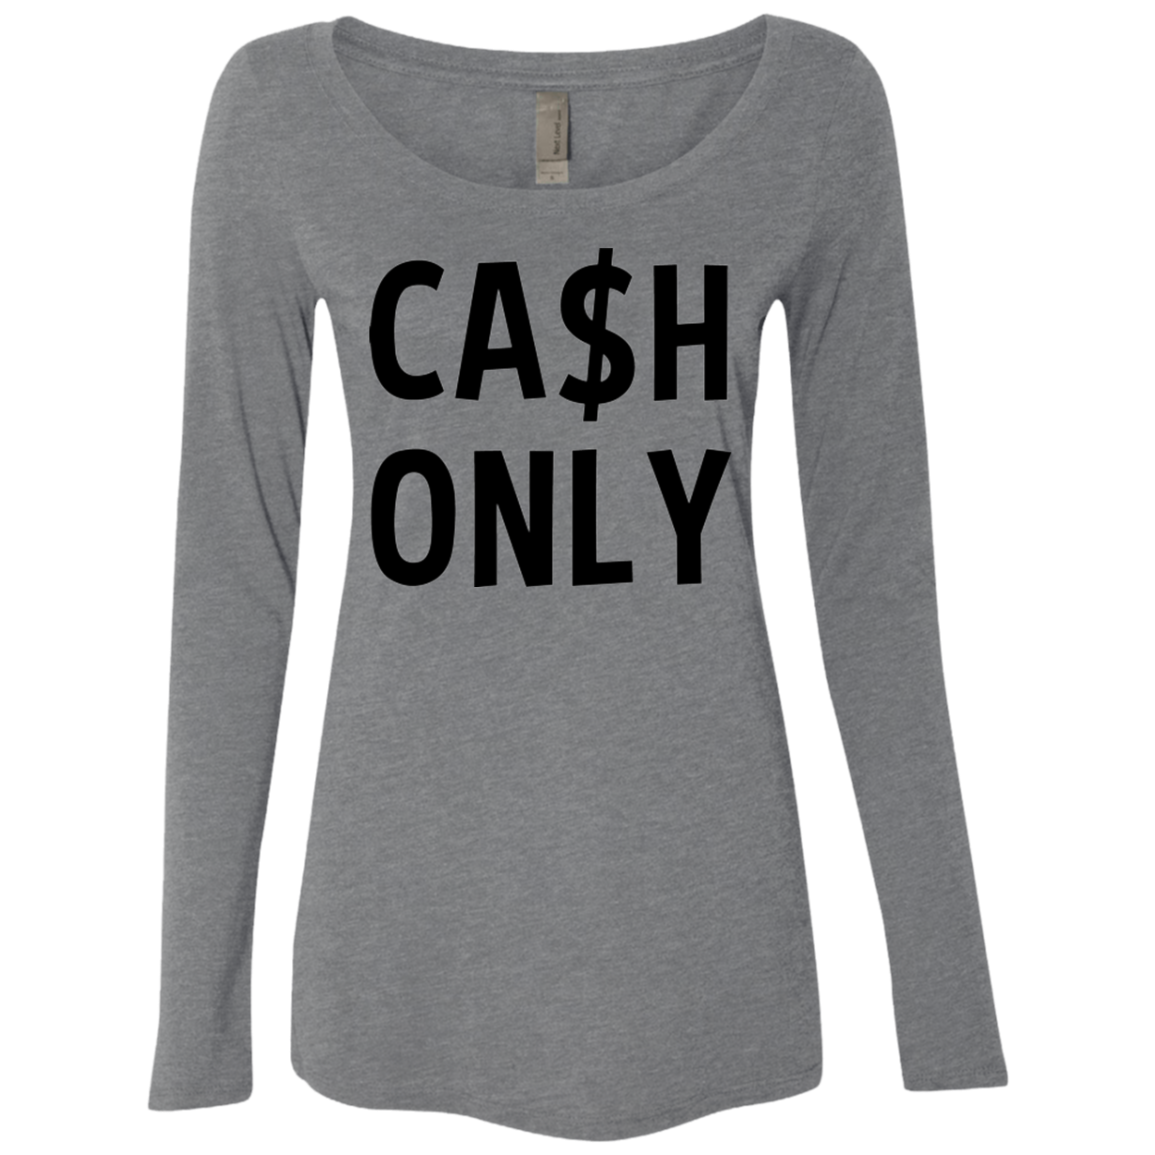 Cash Only Women's Long Sleeve Tee - Trendy Tees